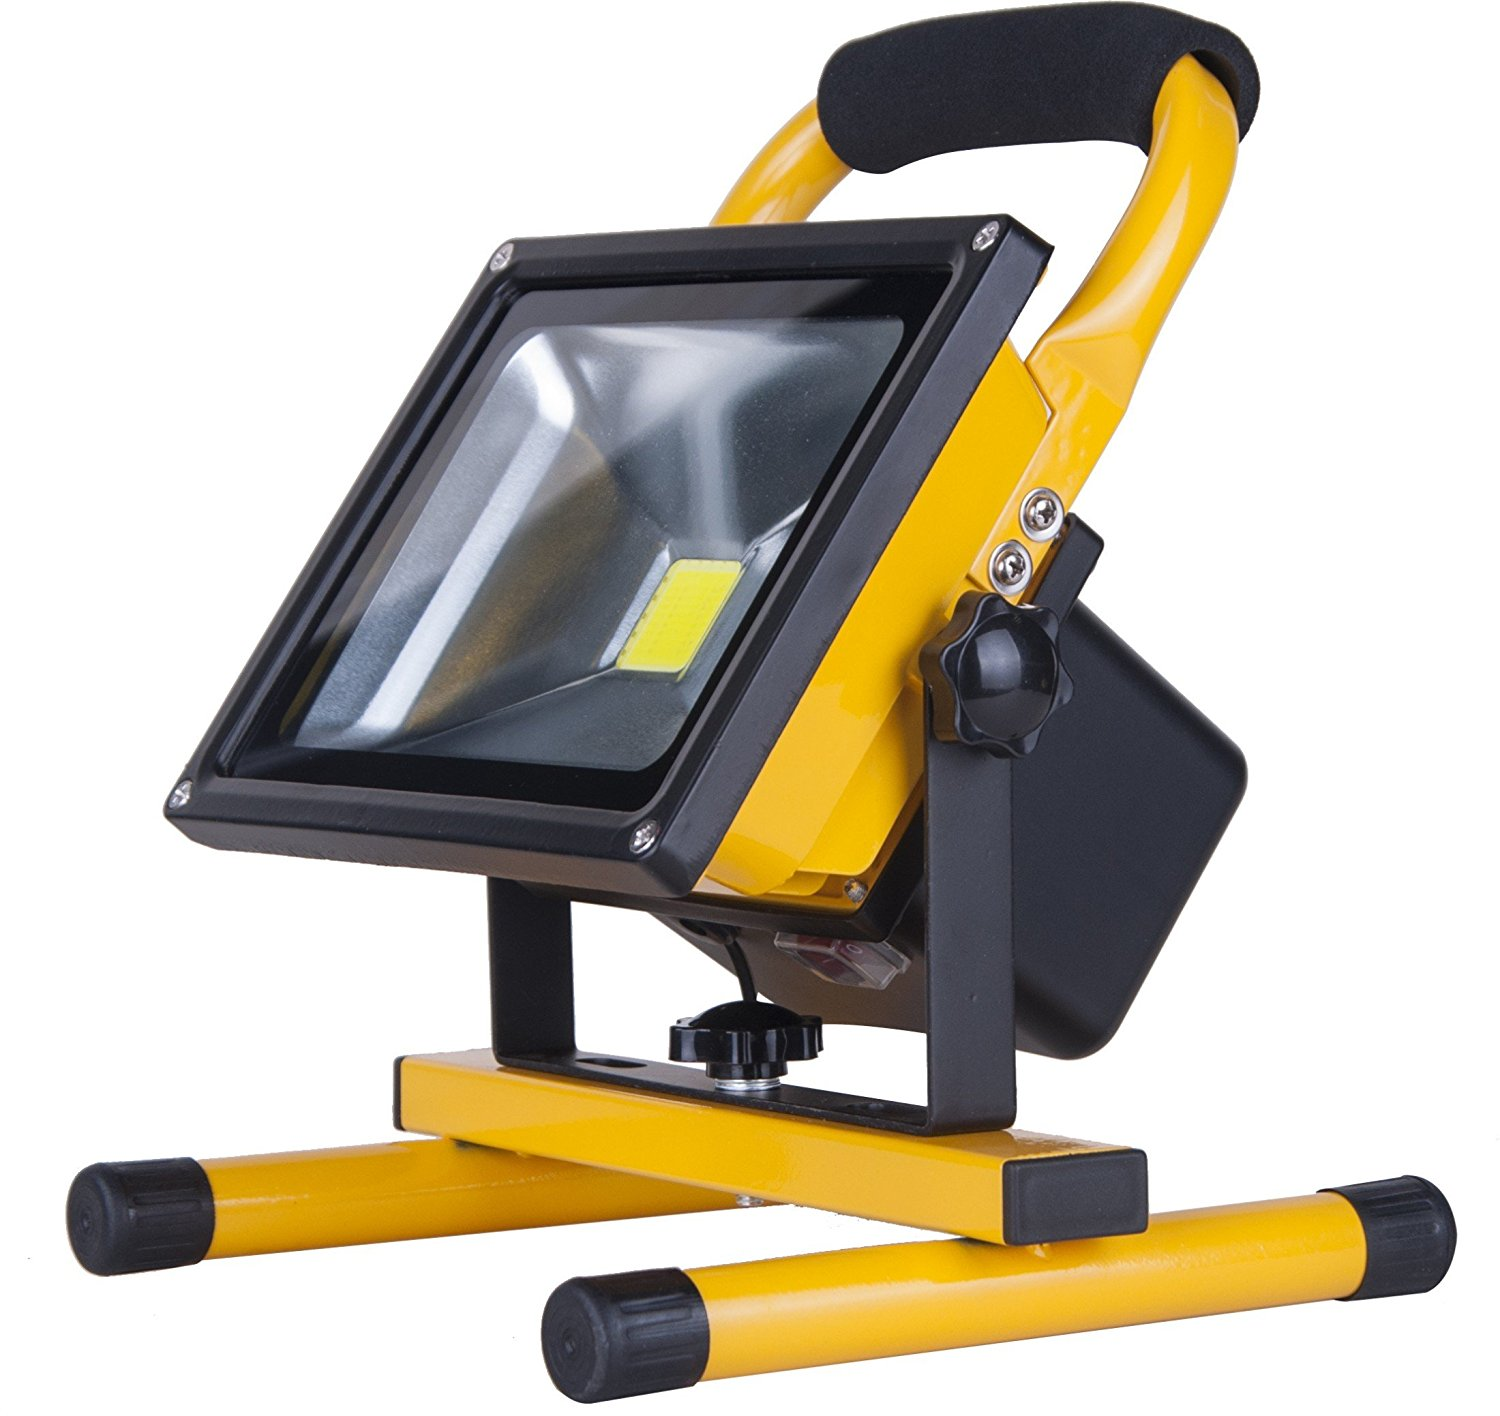 Portable recharge flood light 20W 1PCS Die-cast aluminium body & Taiwan Chip IP65 & AC110-240V DC8.4V-1000mA adaptor & 7.4V 8800mAh battery for your outdoor lighting space